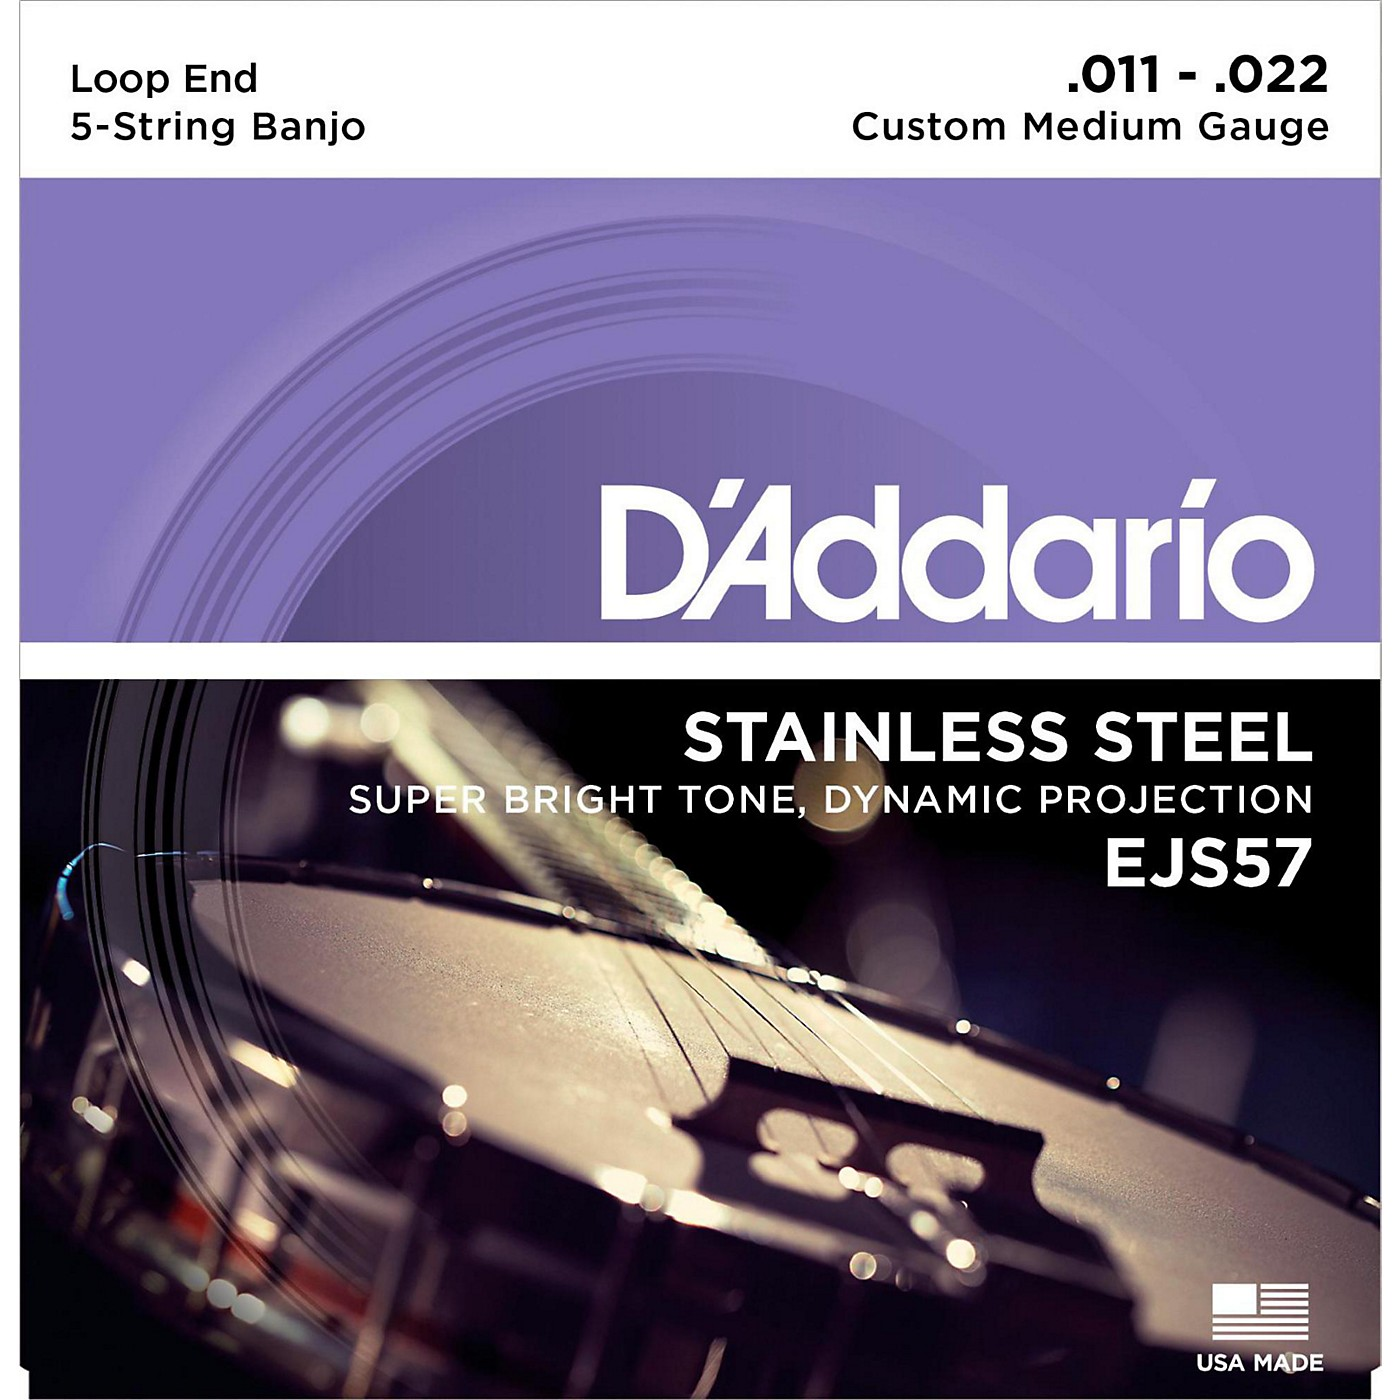 D'Addario EJS57 Stainless Steel Custom Medium 5-String Banjo Strings (11-22) thumbnail